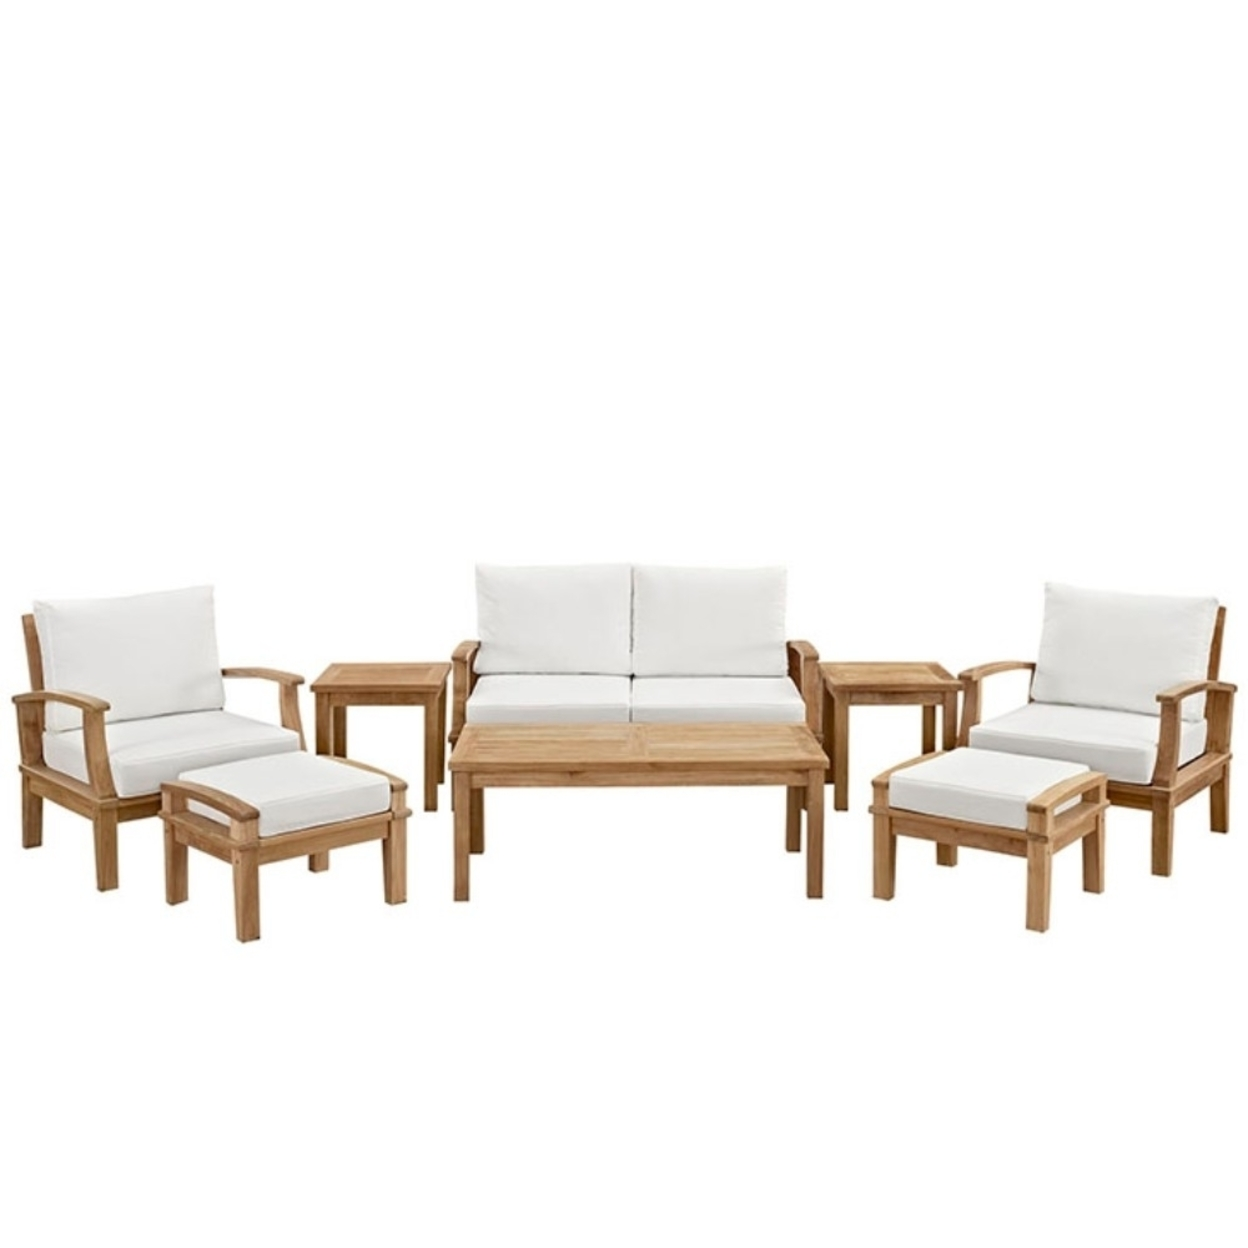 Marina 8 Piece Outdoor Patio Teak SofaSet, Natural White 5a0c04c8e224616d503ae44f